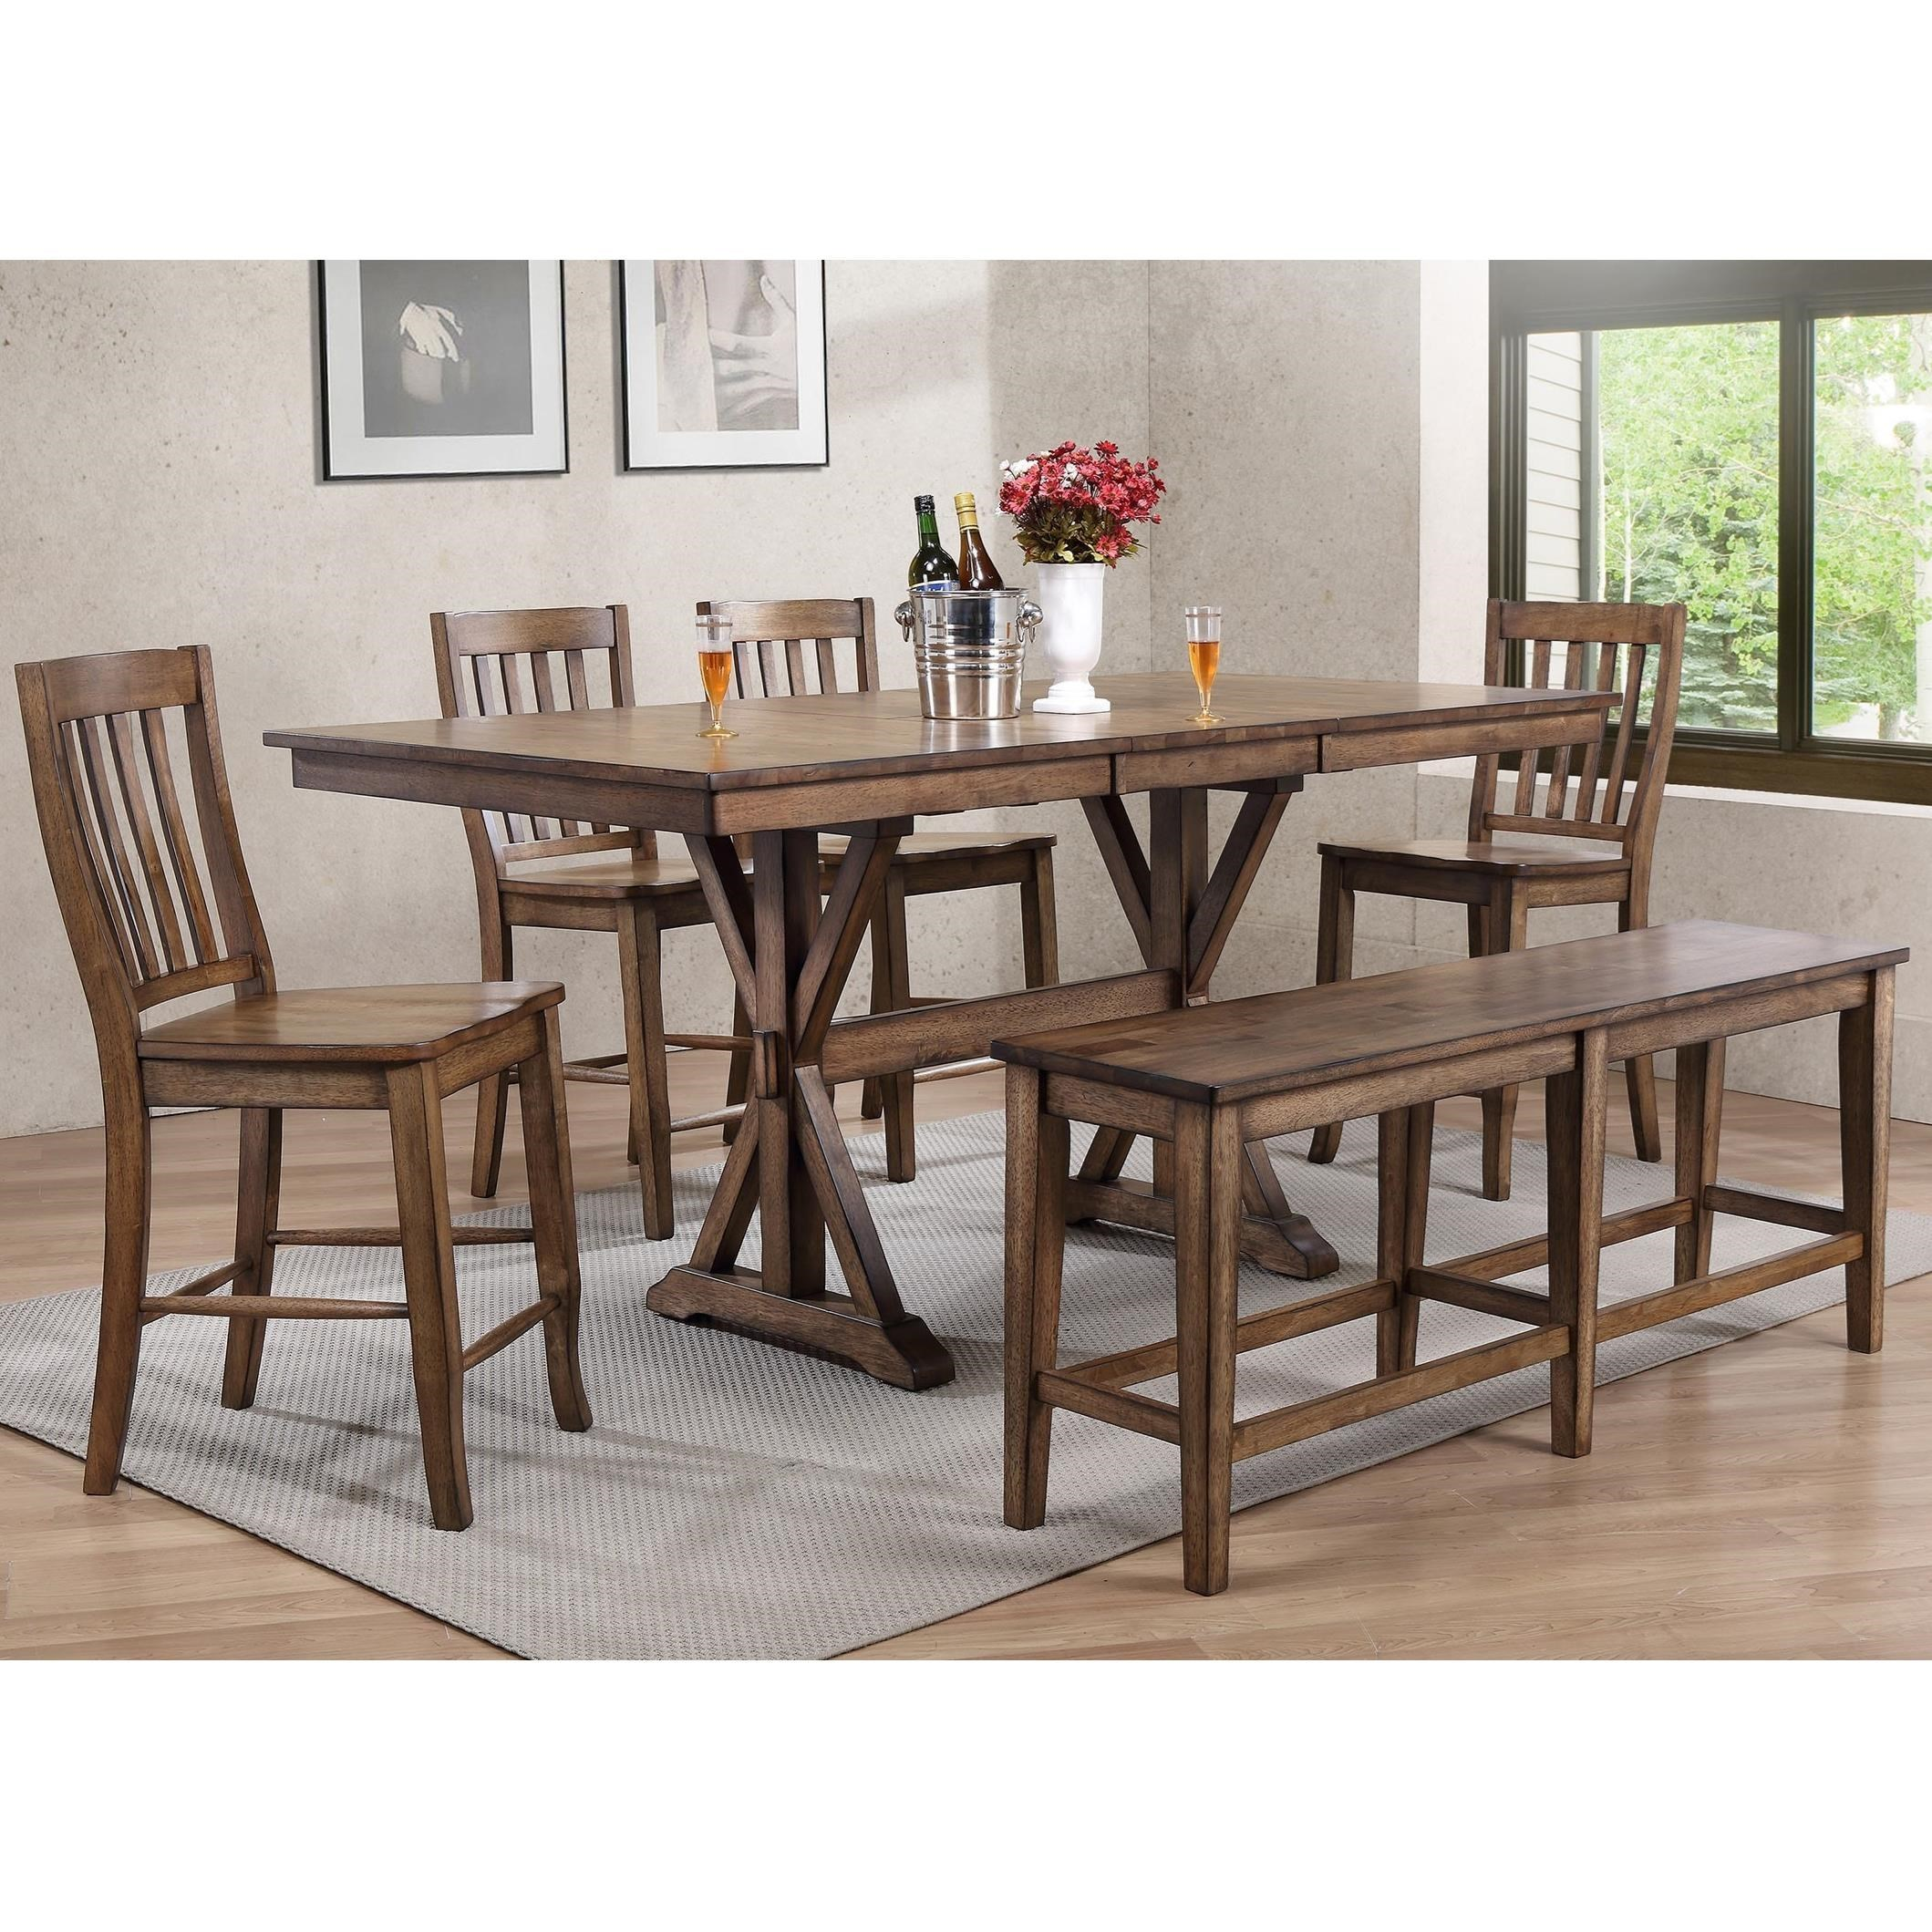 Amazing Carmel 6 Piece Dining Set With Bench By Winners Only